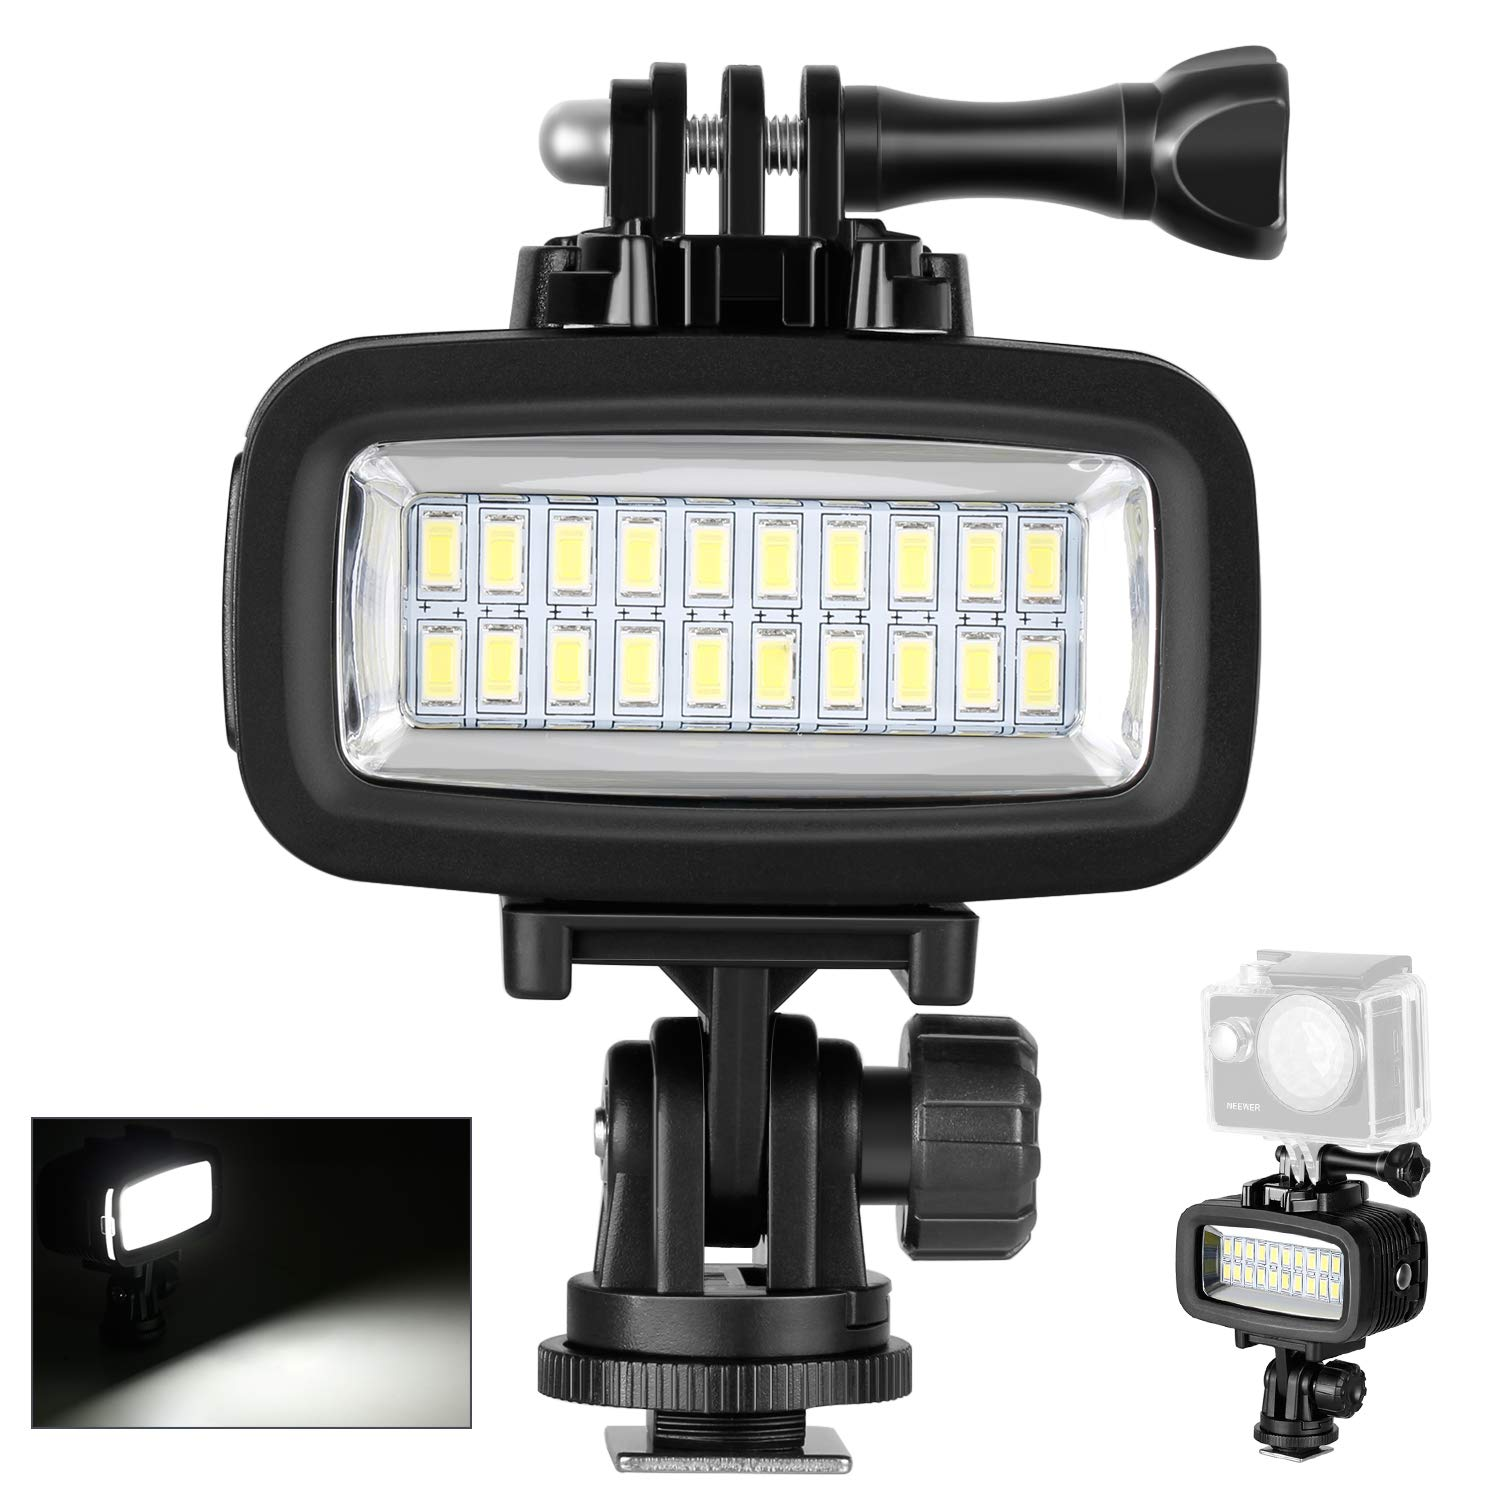 Neewer Waterproof Up to 131ft/40m Underwater 20 LED 700LM Flash Dimmable Fill Night Light with 3 Color Filter(White, Orange, Purple) for GoPro Hero 7 6 5 4 3+ 3 2 1 Action Camera and All DSLR Cameras by Neewer